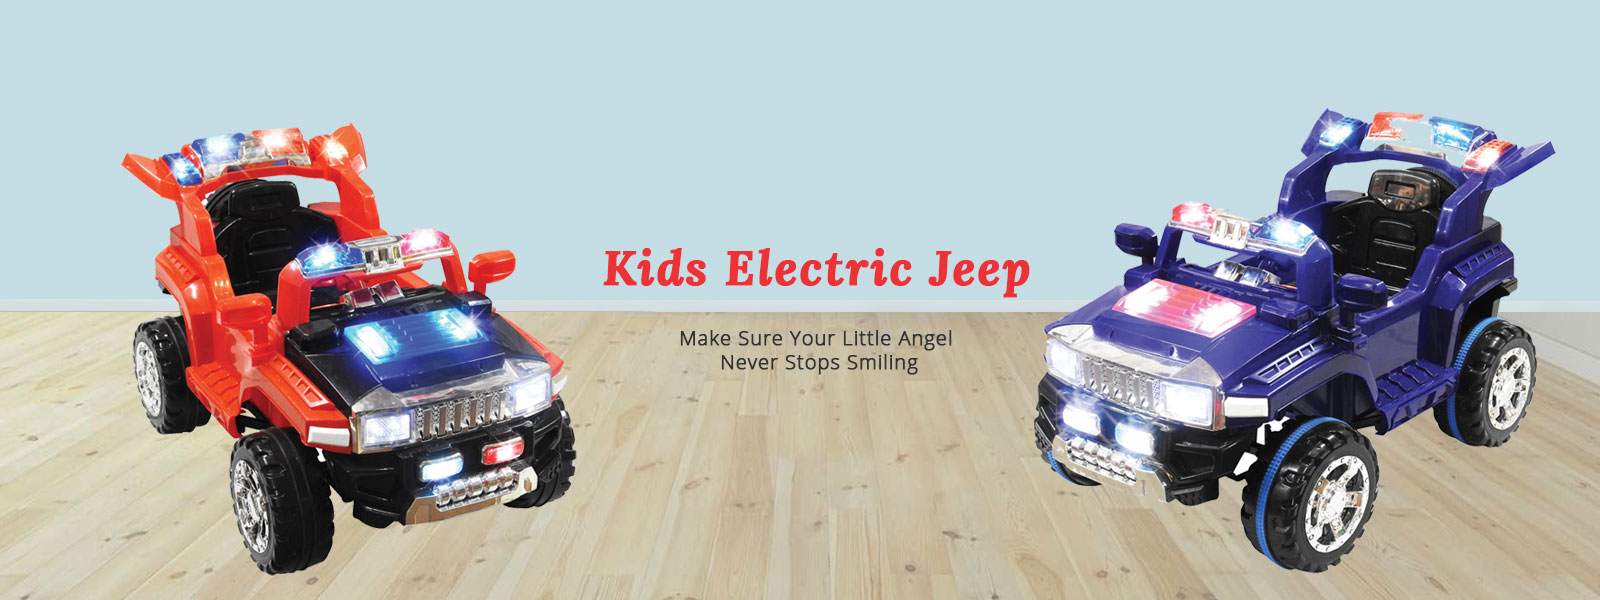 Kids Electric Jeep Manufacturers in Delhi